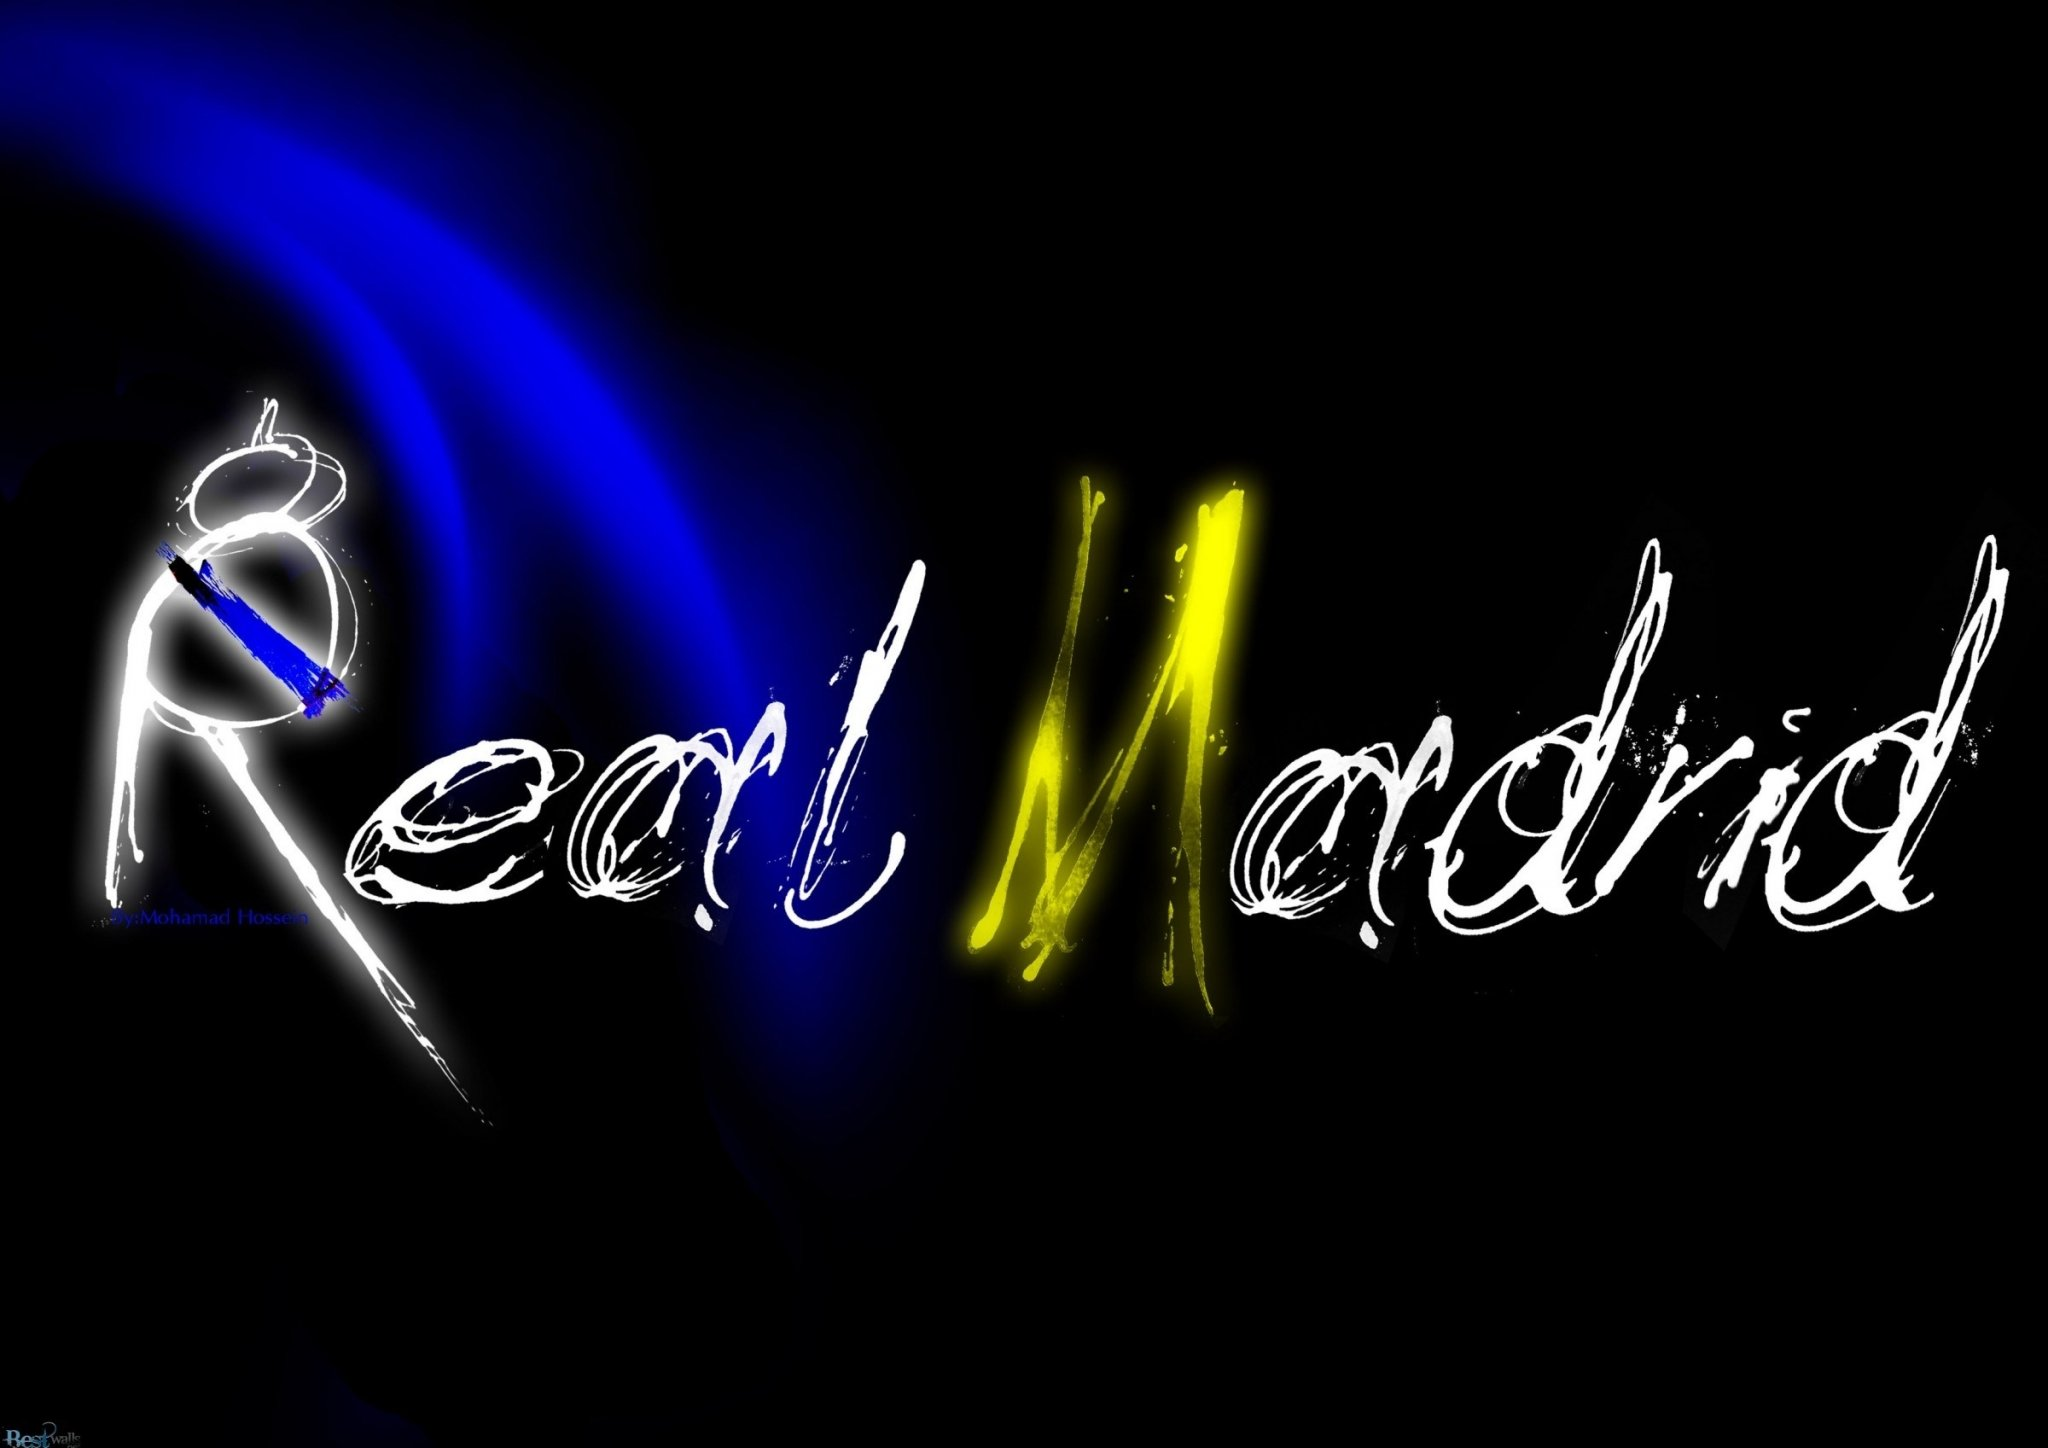 Real madrid wallpapers top free real madrid backgrounds - Madrid wallpaper ...